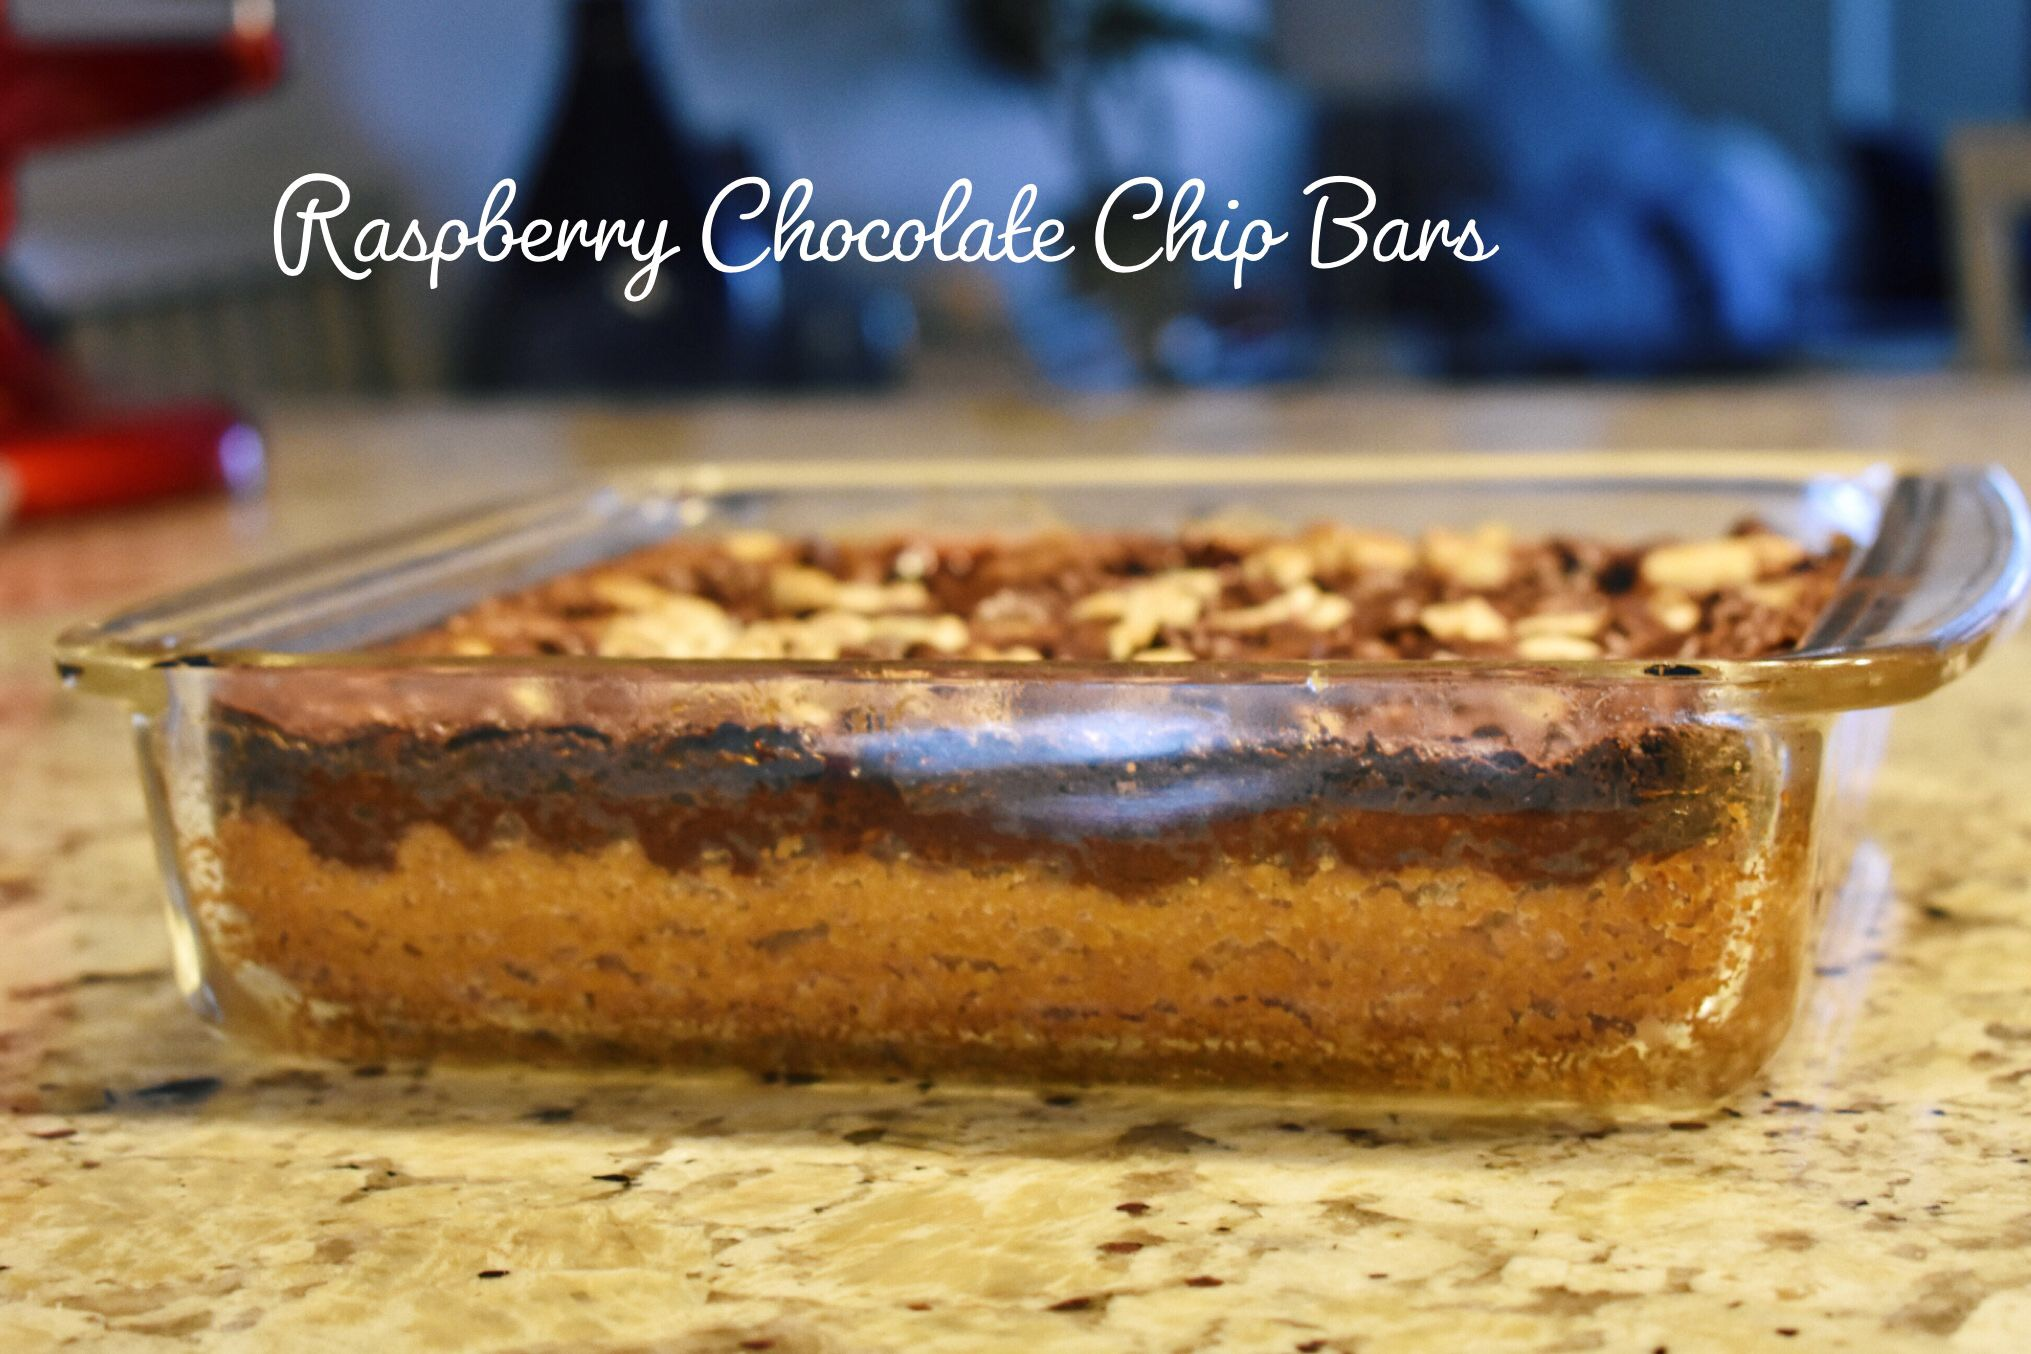 Raspberry Chocolate Chip Bar recipe